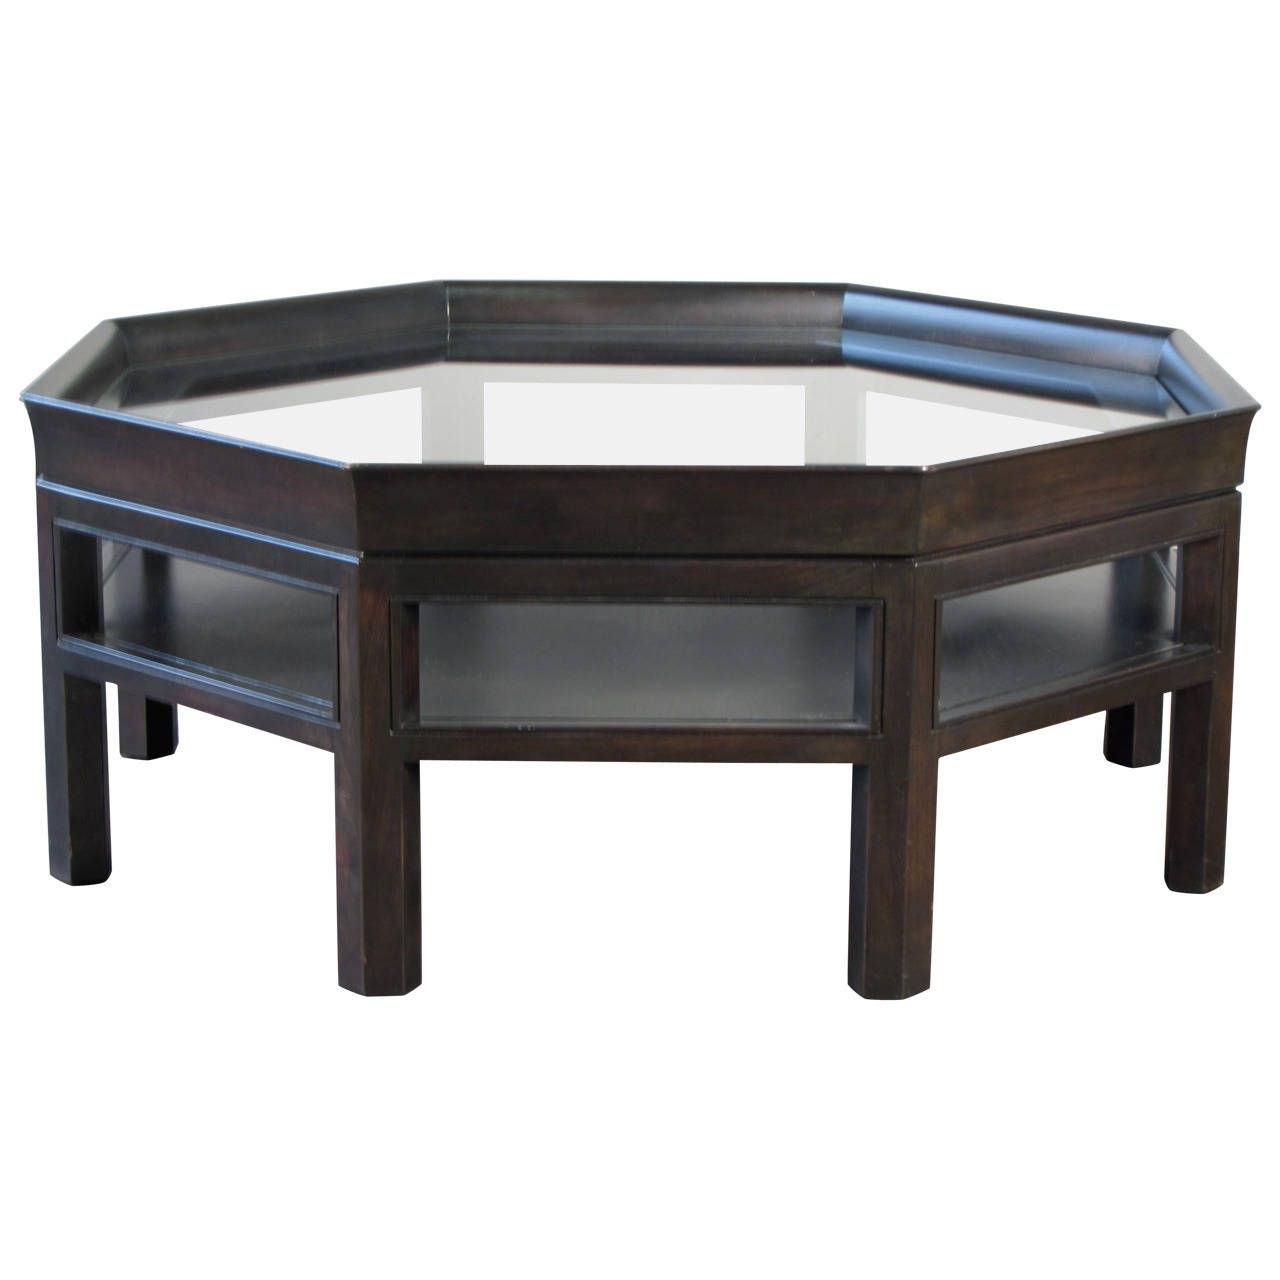 Simple Elegant Octagonal Coffee Table By Baker Furniture | From A Unique  Collection Of Antique And